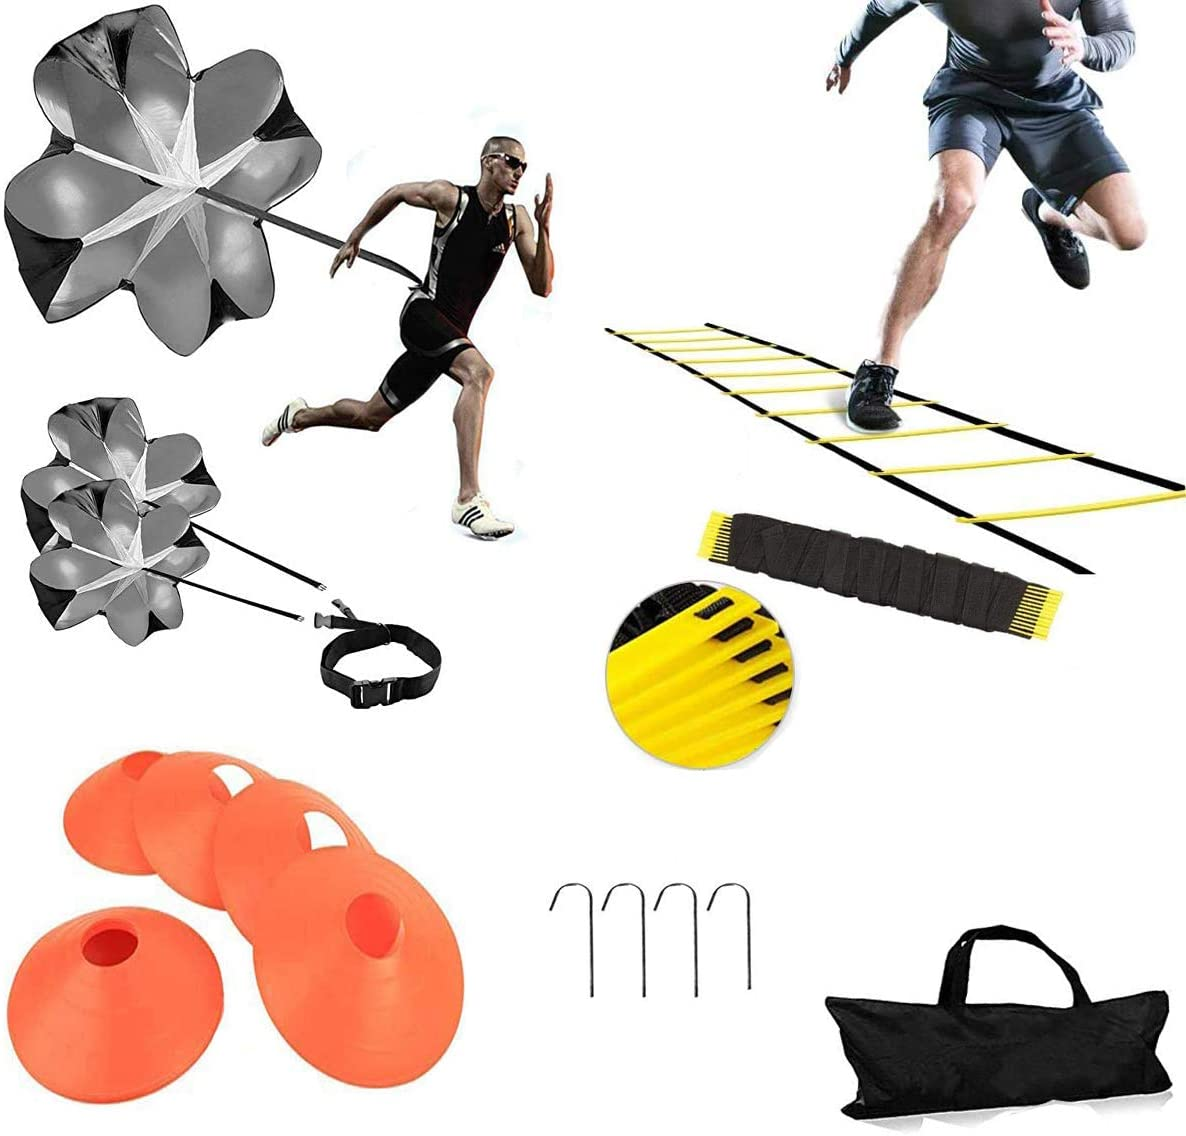 XINXIANG Speed 67% OFF of Limited time cheap sale fixed price AgilityTraining Kit-Includes 5 Agility Ro Ladder